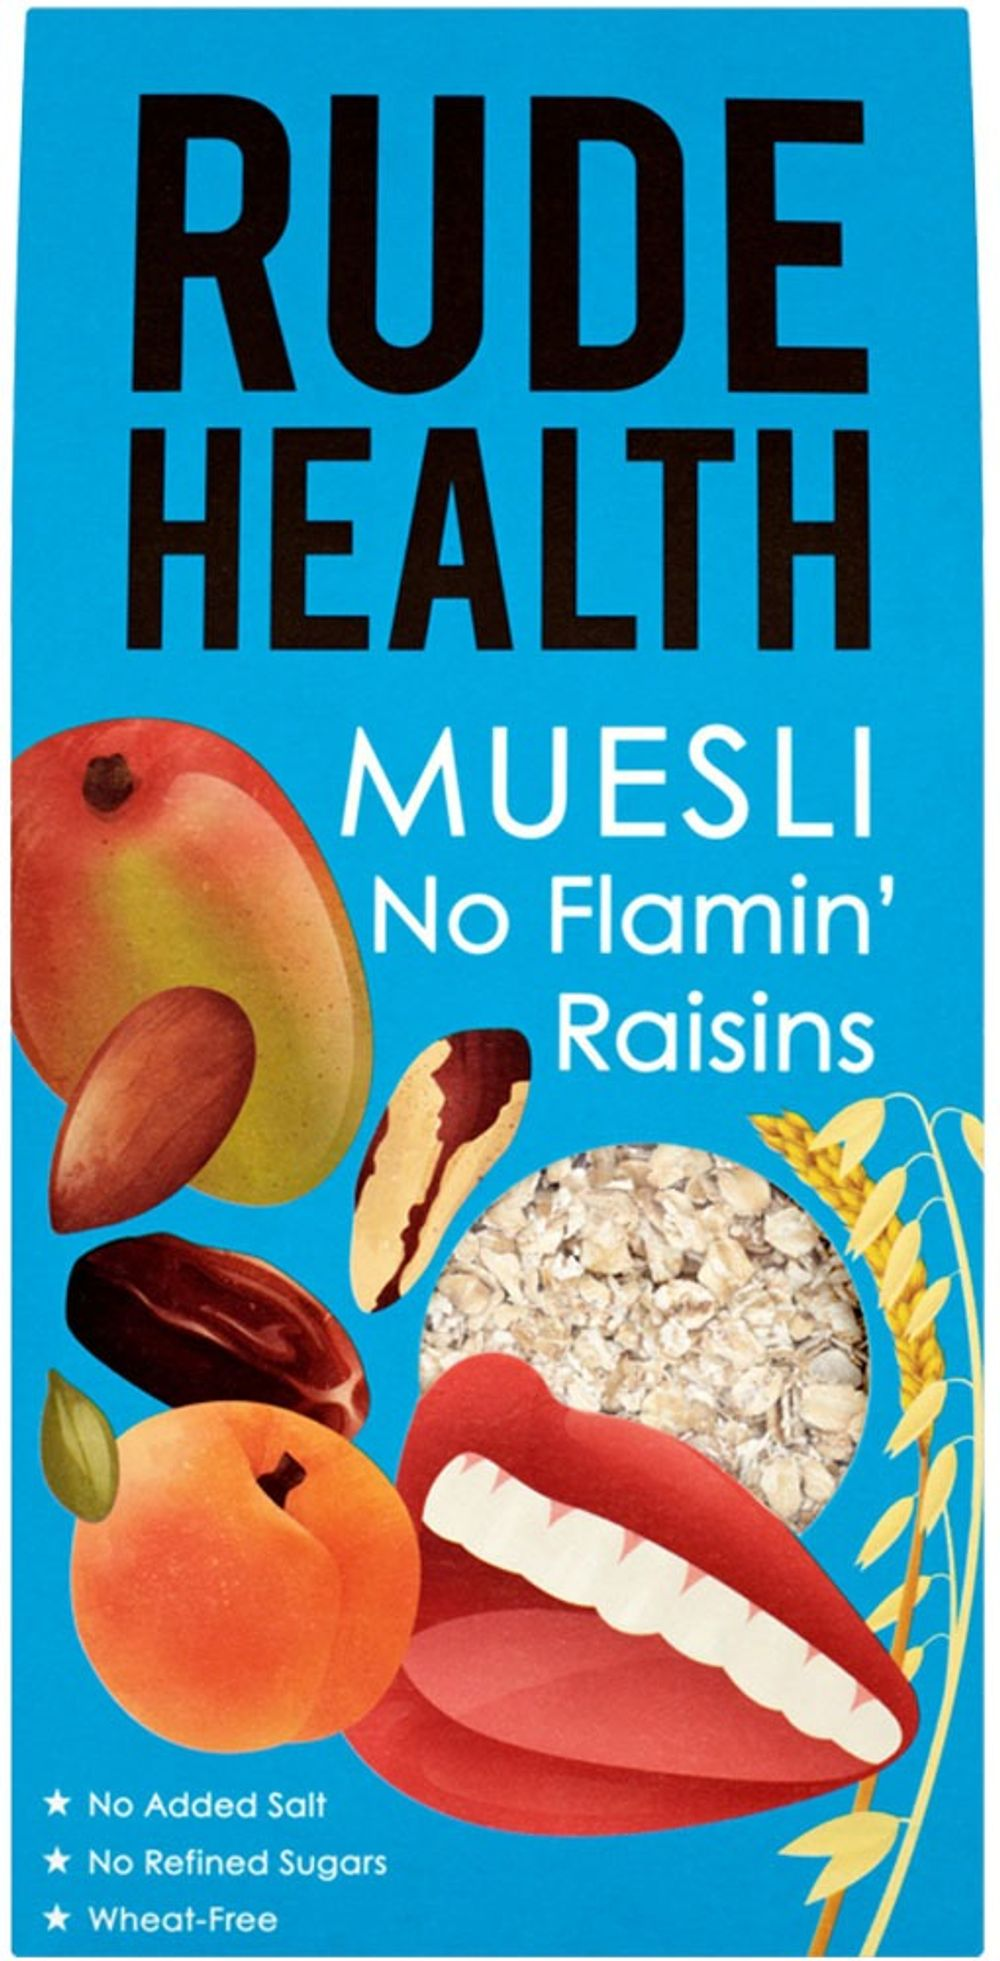 No Flamin' Raisins Muesli